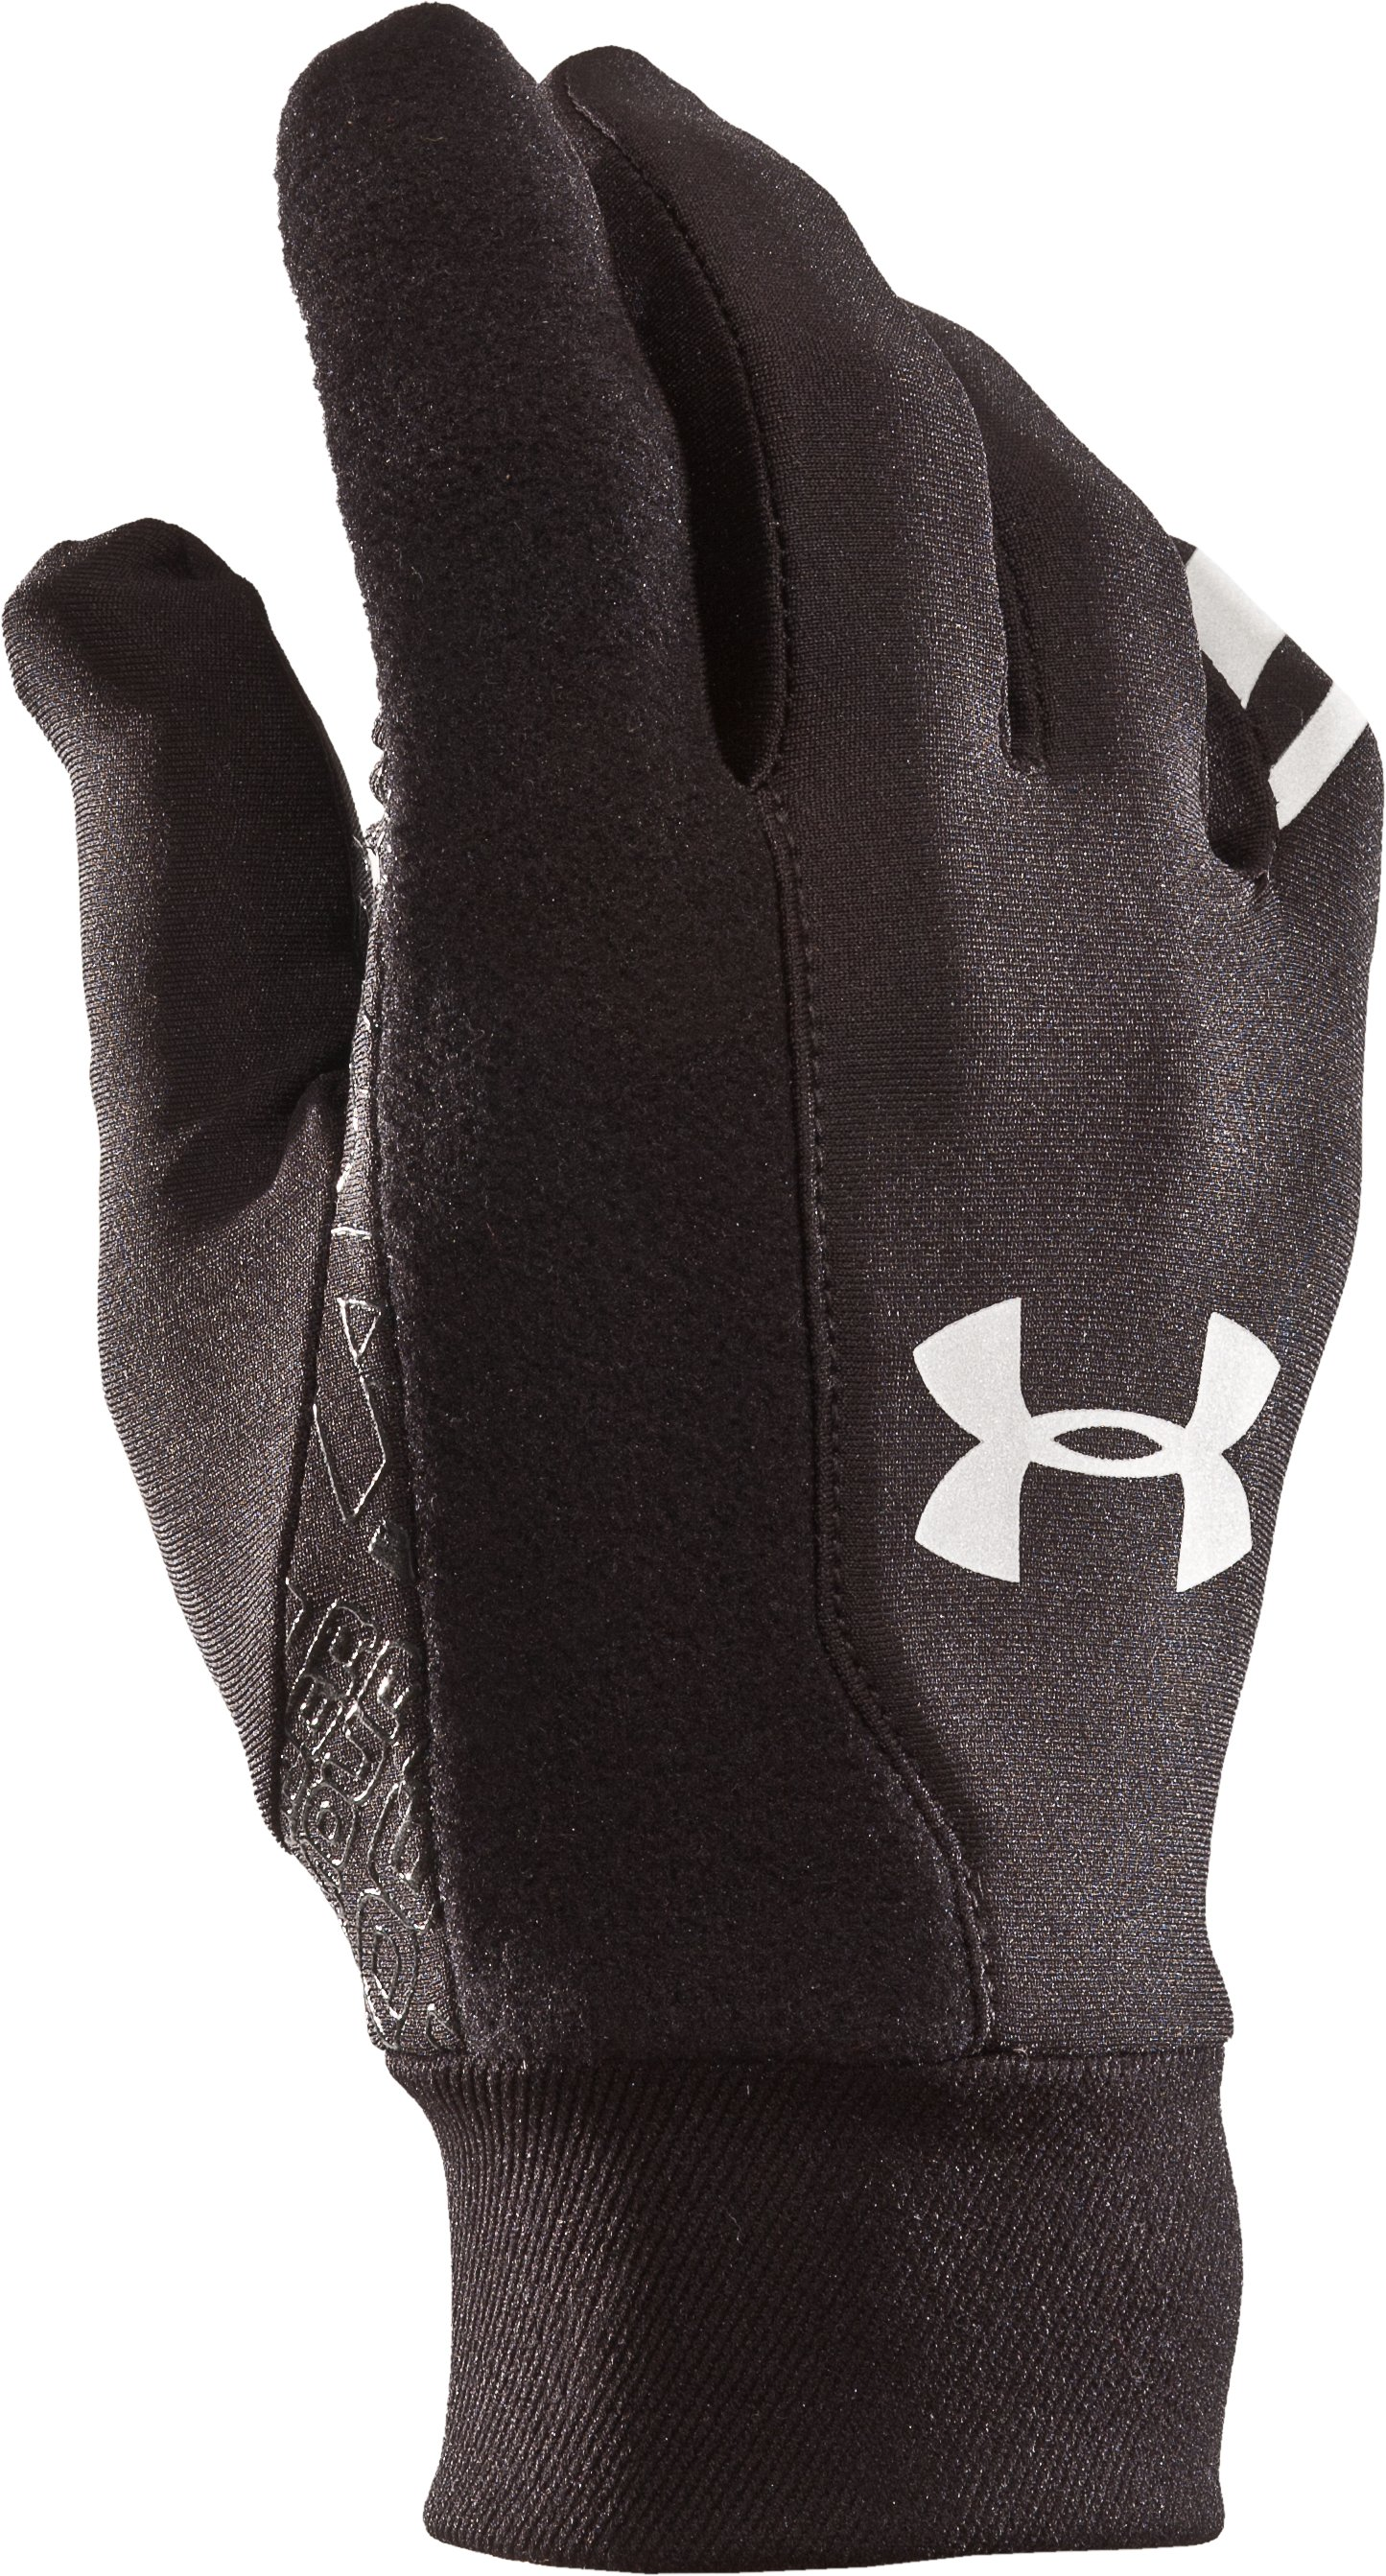 ColdGear® Liner Gloves, Black